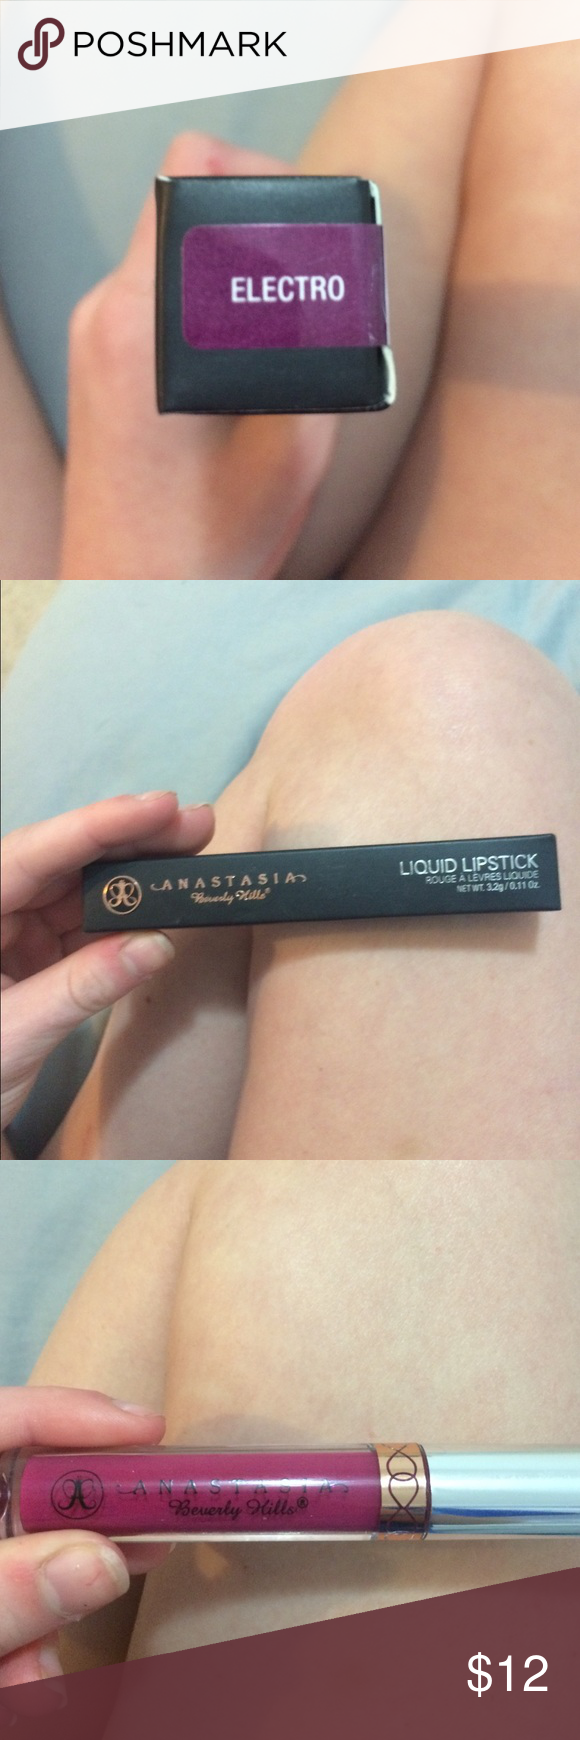 ABH Lipstick · Personal Palace · Online Store Powered by